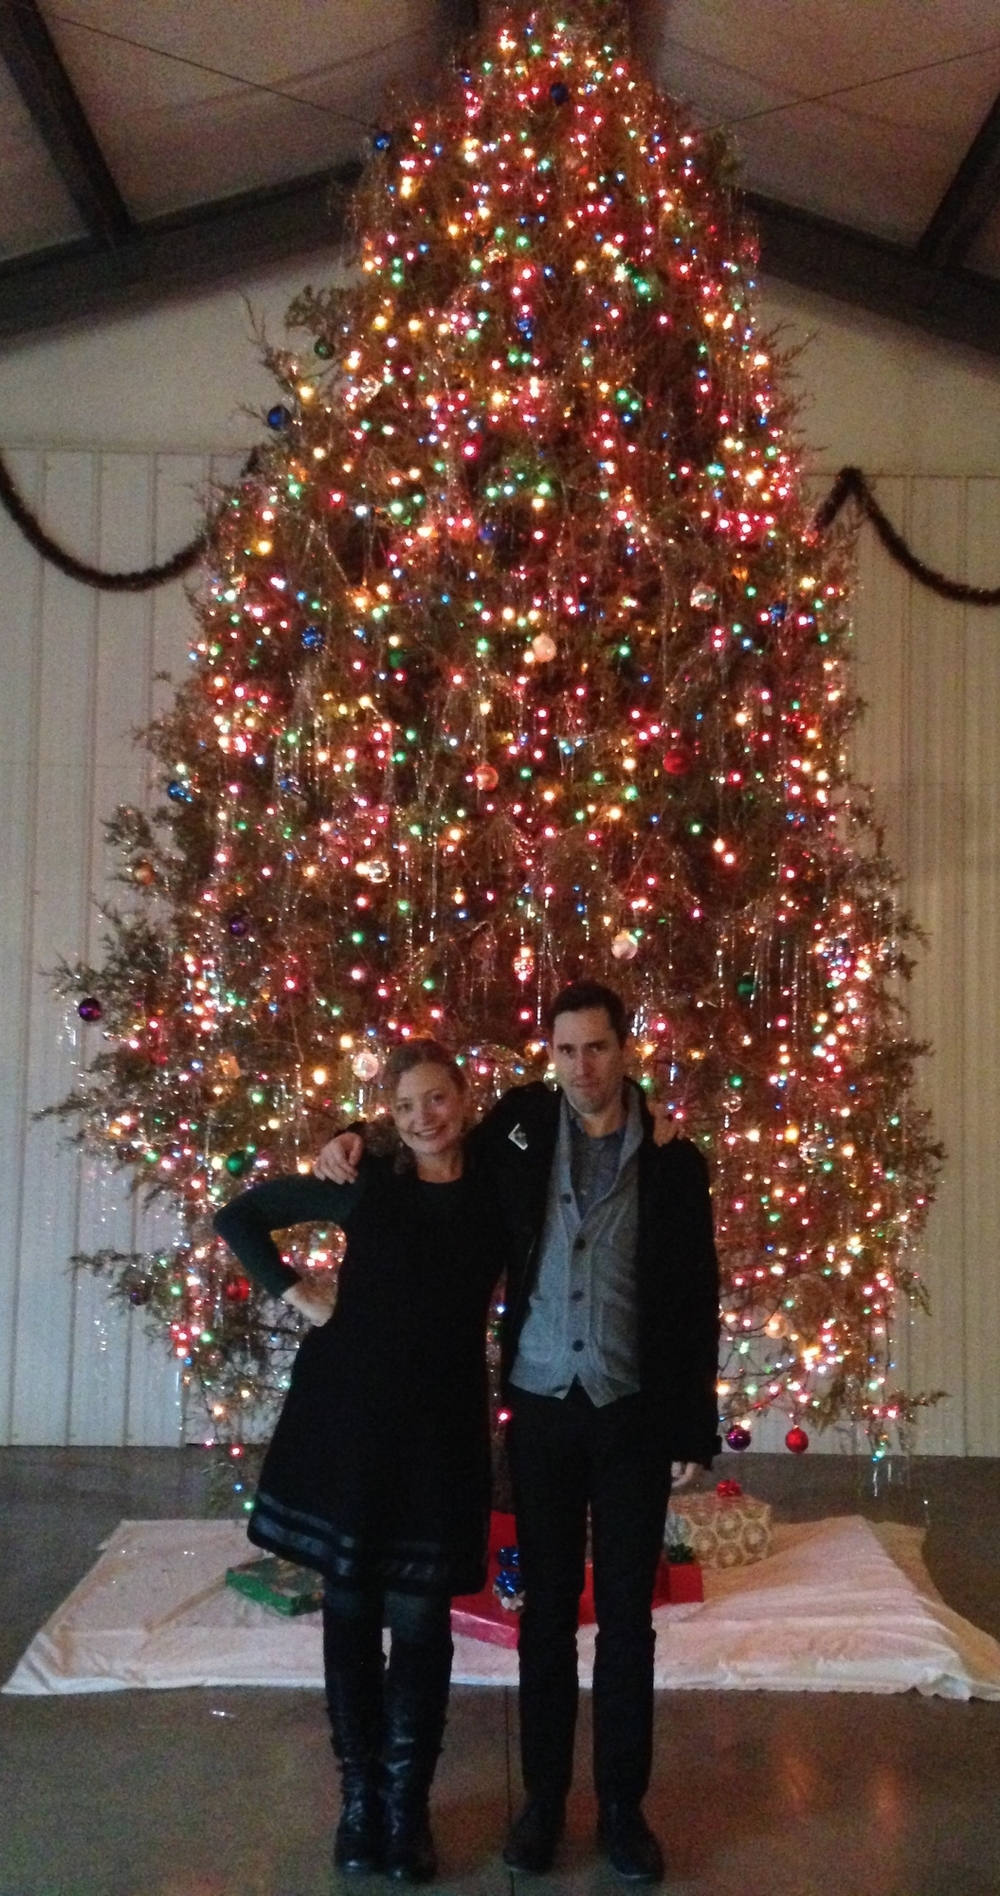 My pal Joey and I with BRV's ginormous x-mas tree!